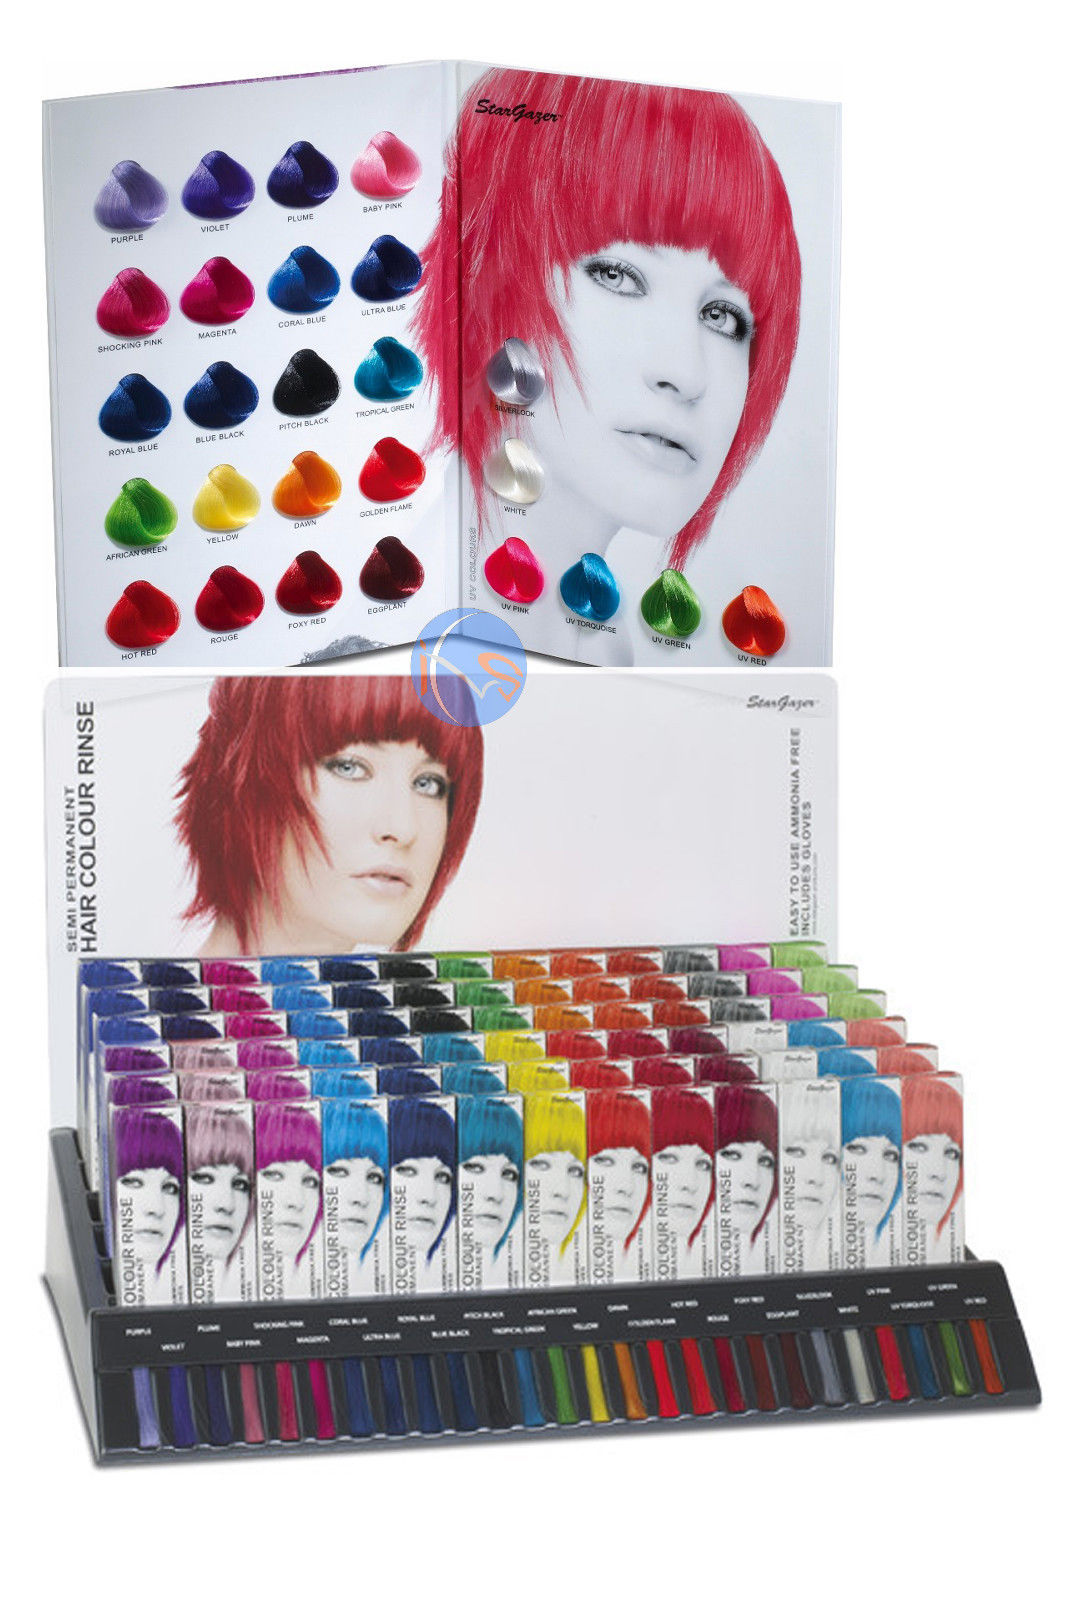 4x-Stargazer-Color-Pelo-semipermanente-Tenido-70ml-Muchos-Colores-Disponible